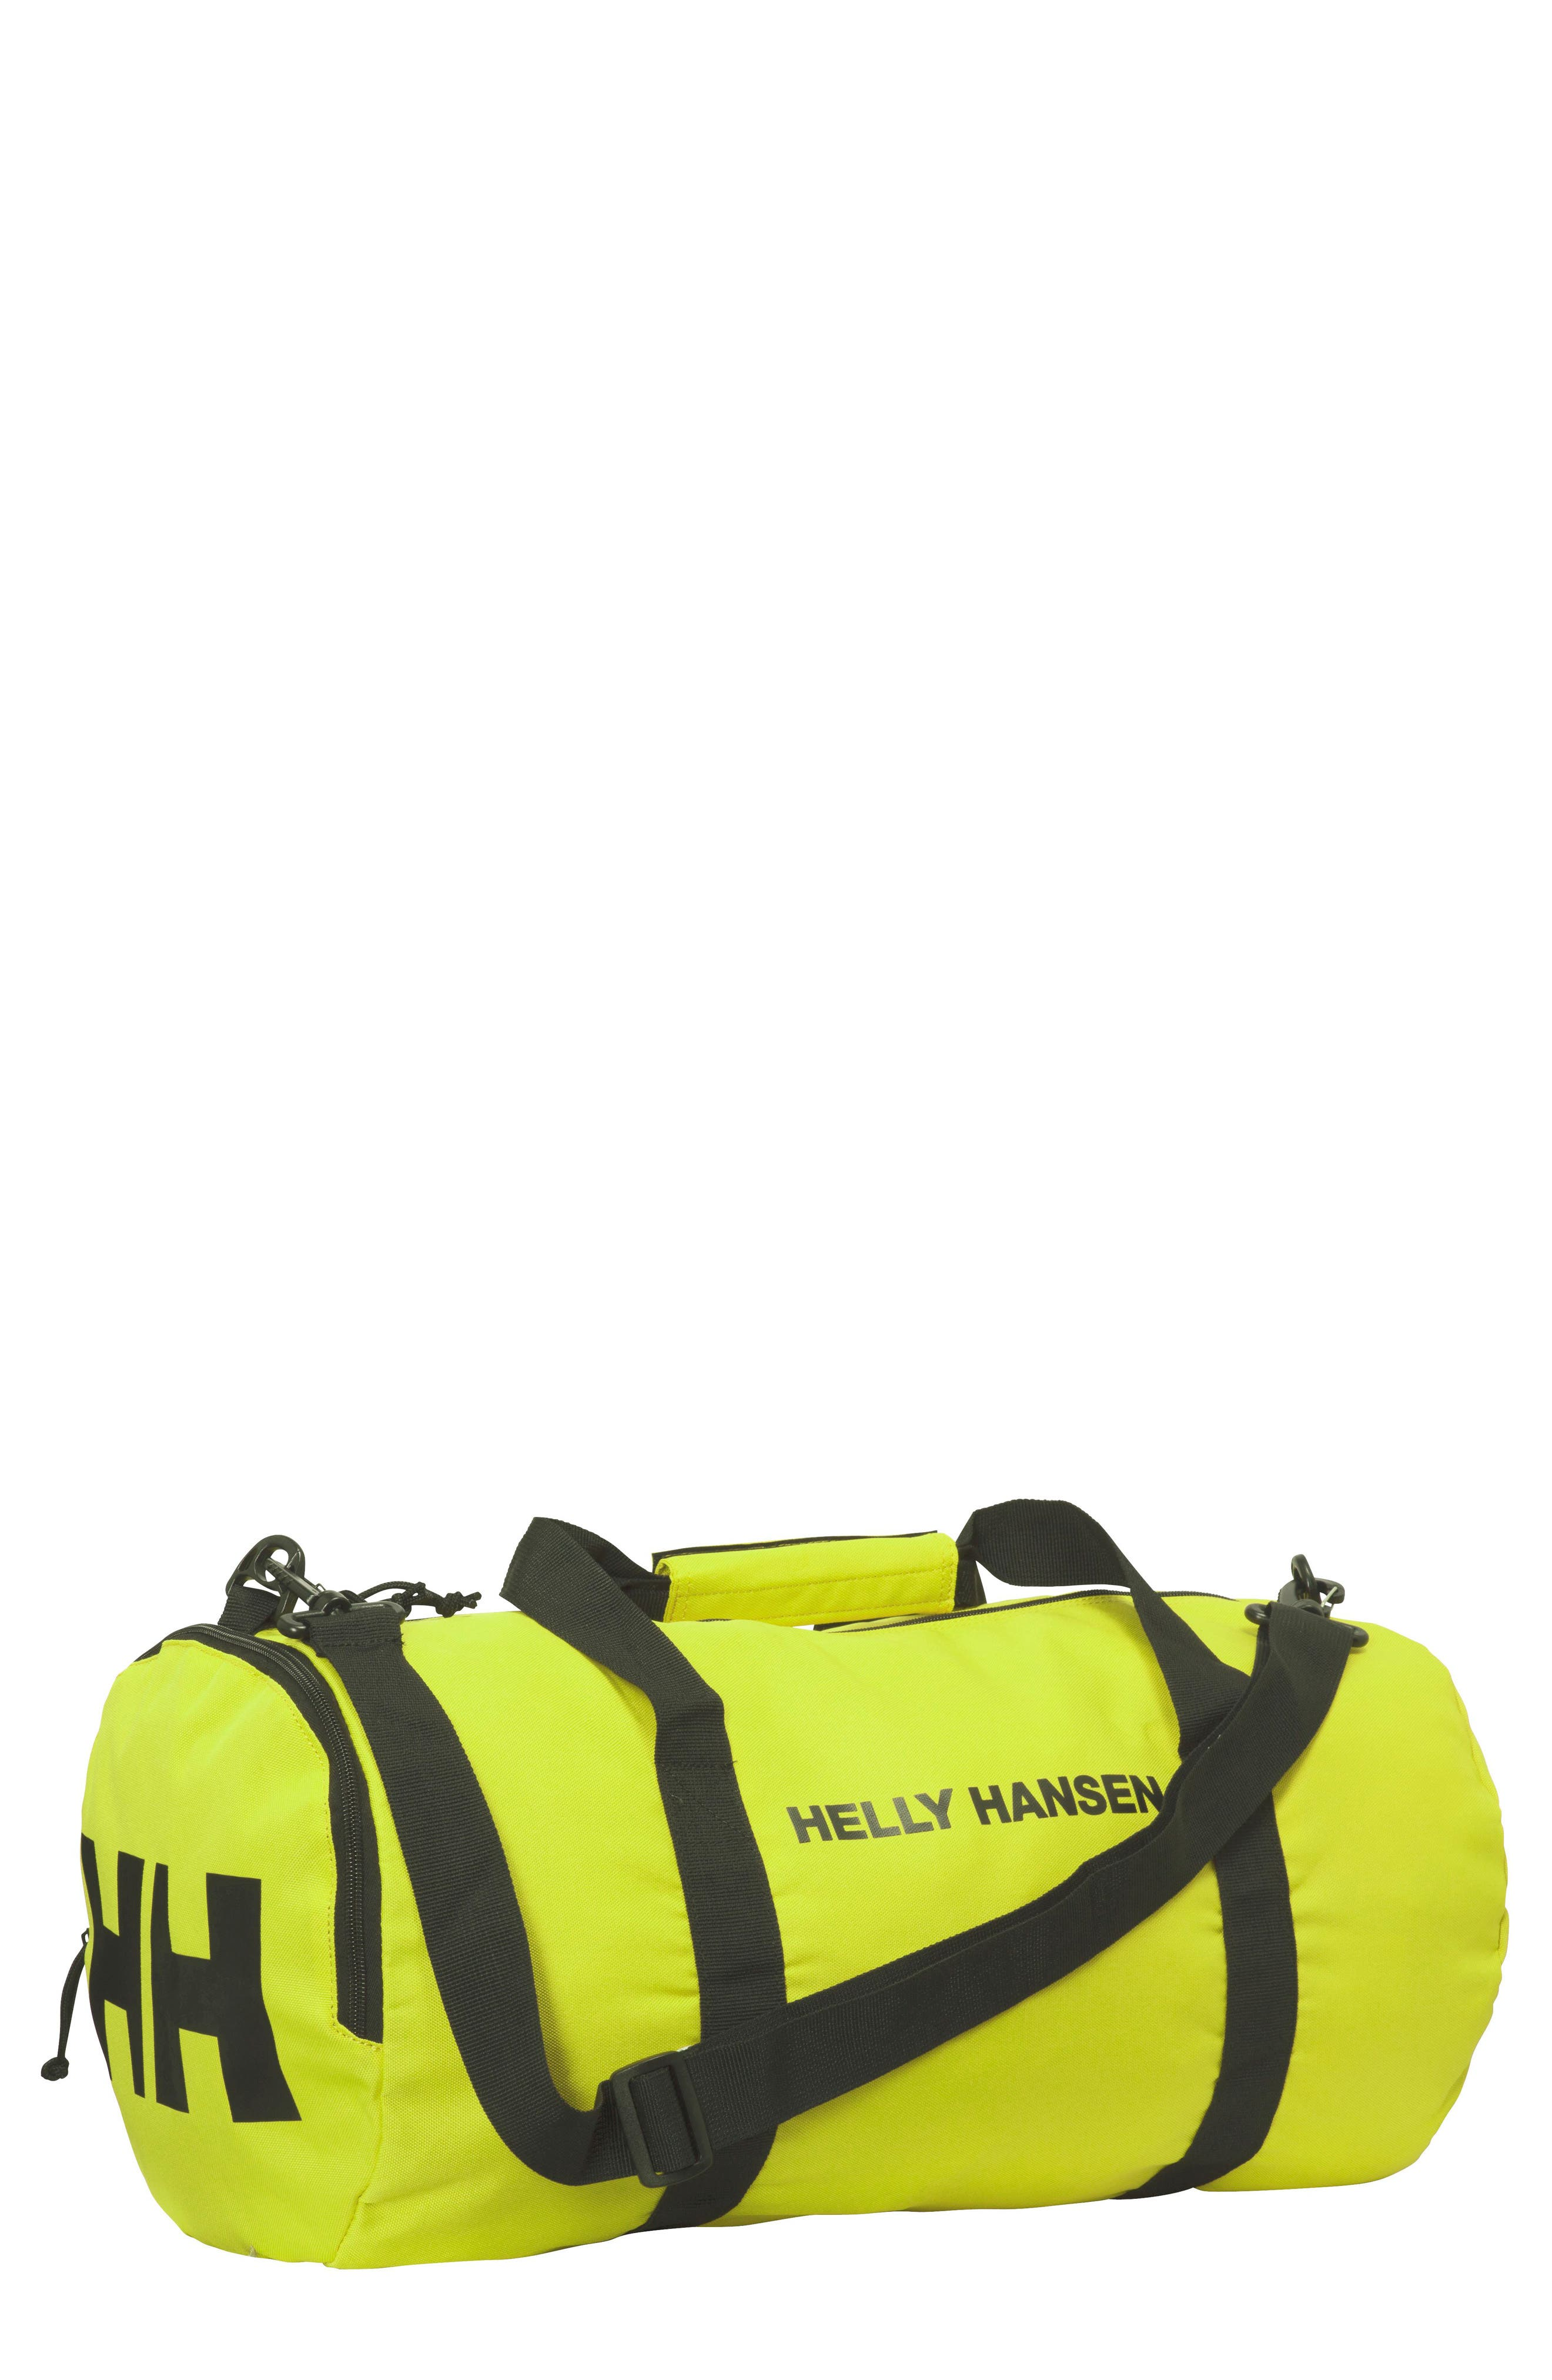 Main Image - Helly Hansen Small Packable Duffel Bag